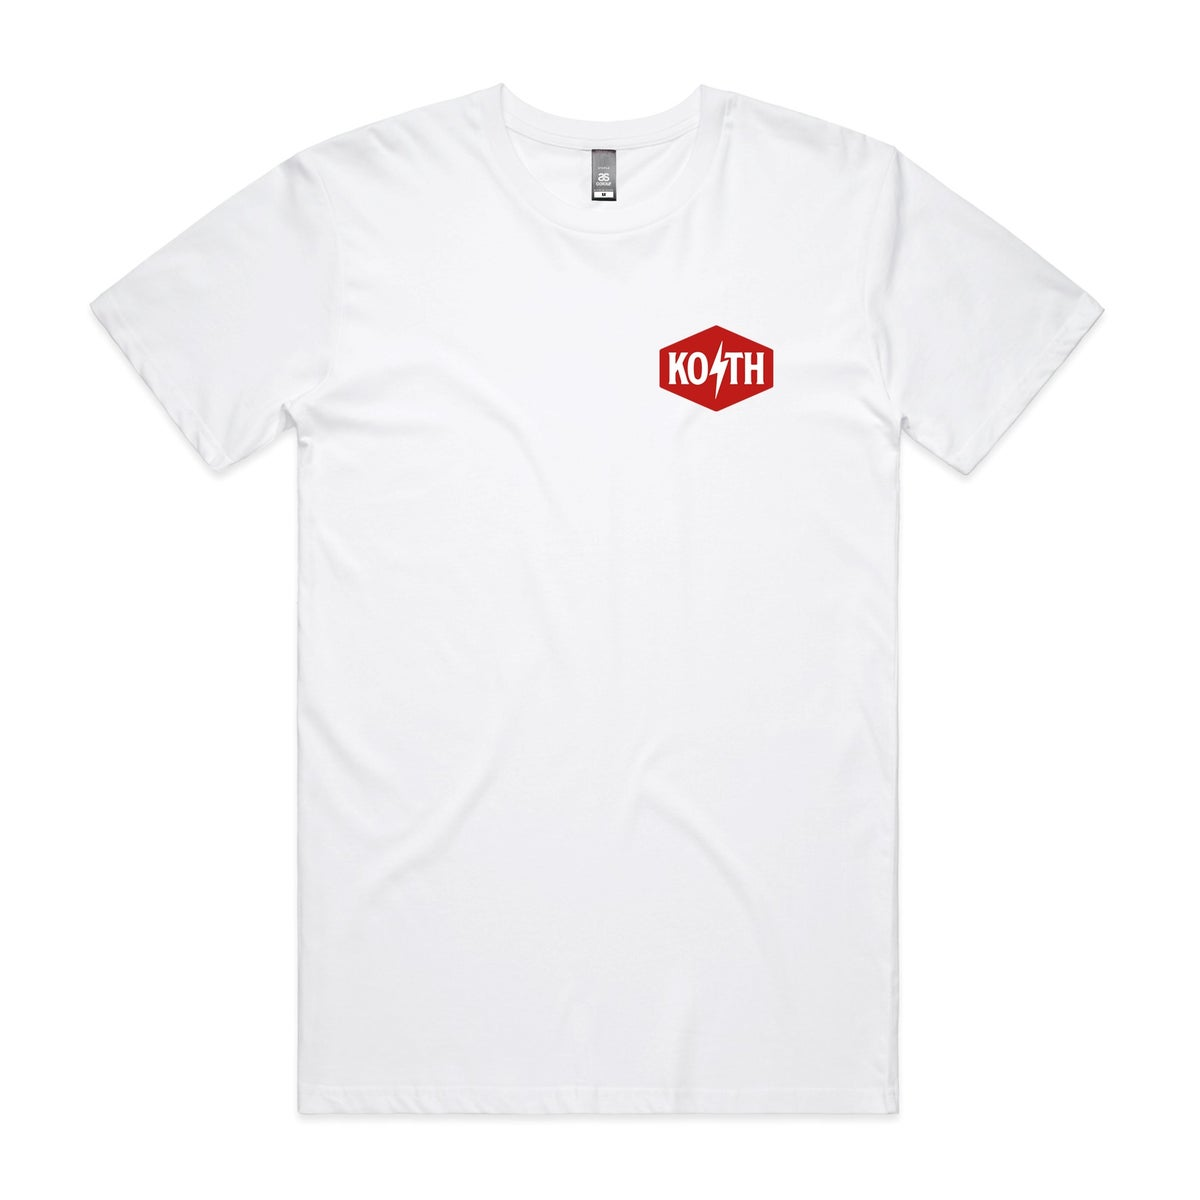 Image of Koth tee - white